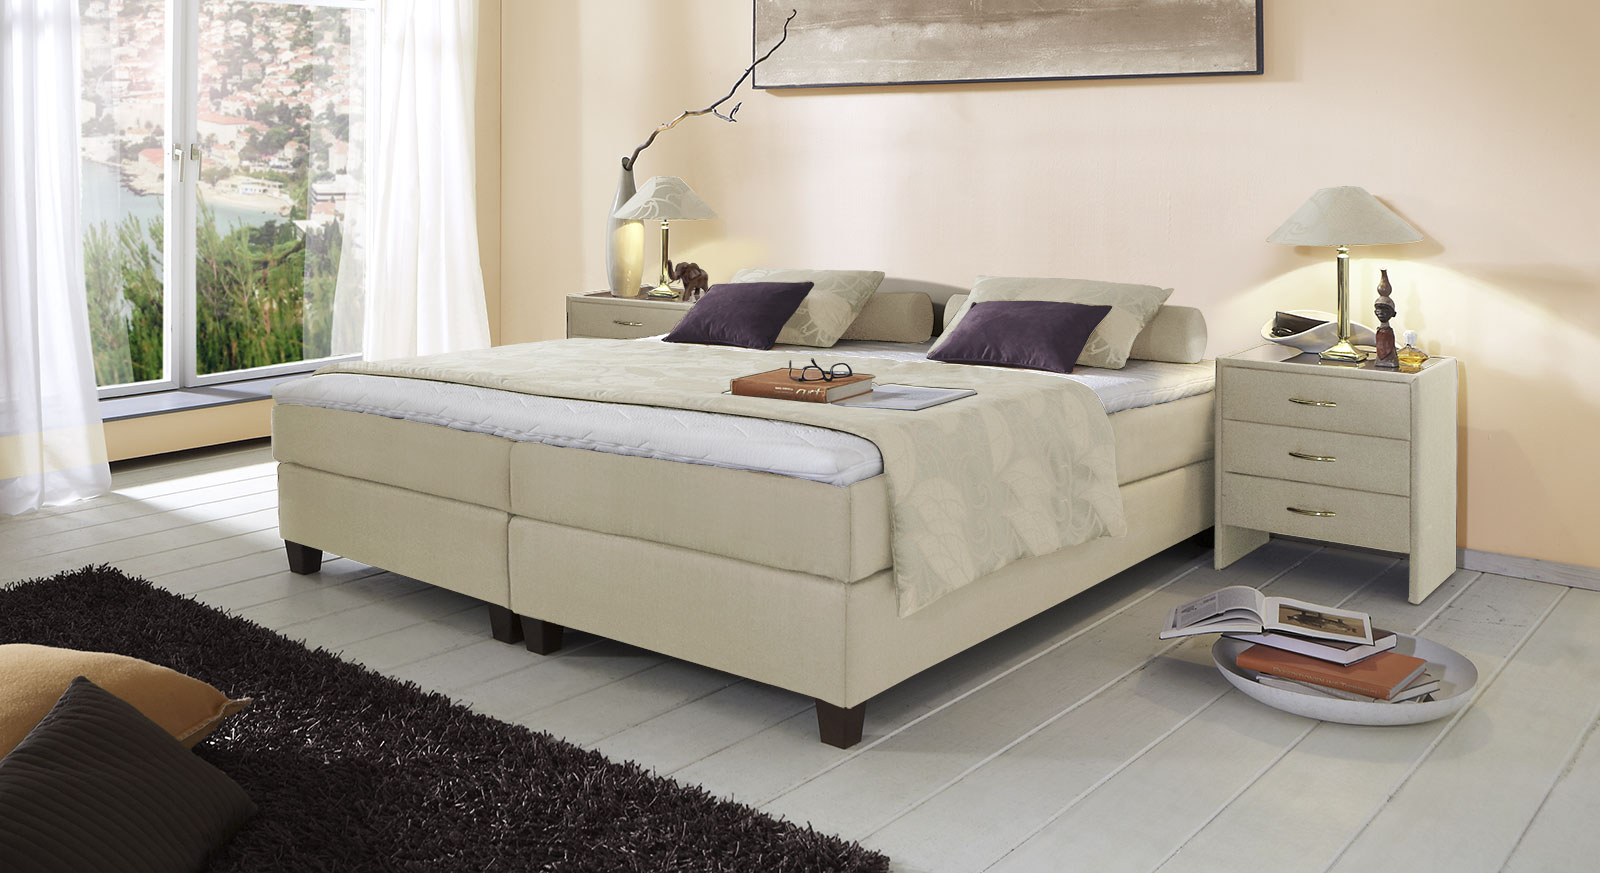 Boxspringliege Luciano in 53 cm Höhe mit Stoffbezug in Creme